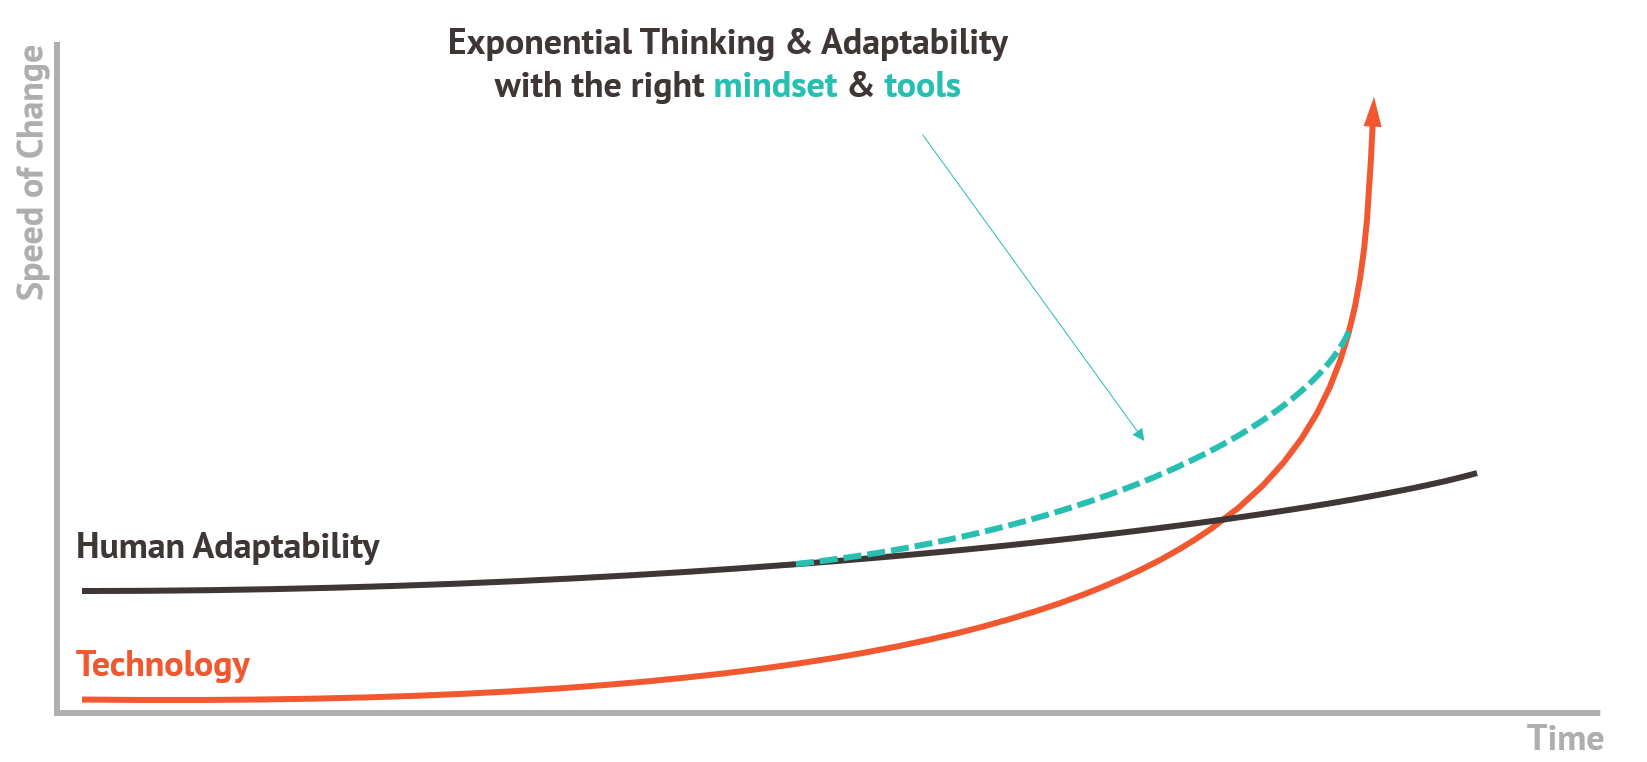 Adaptability and exponential thinking with the right mindset and tools